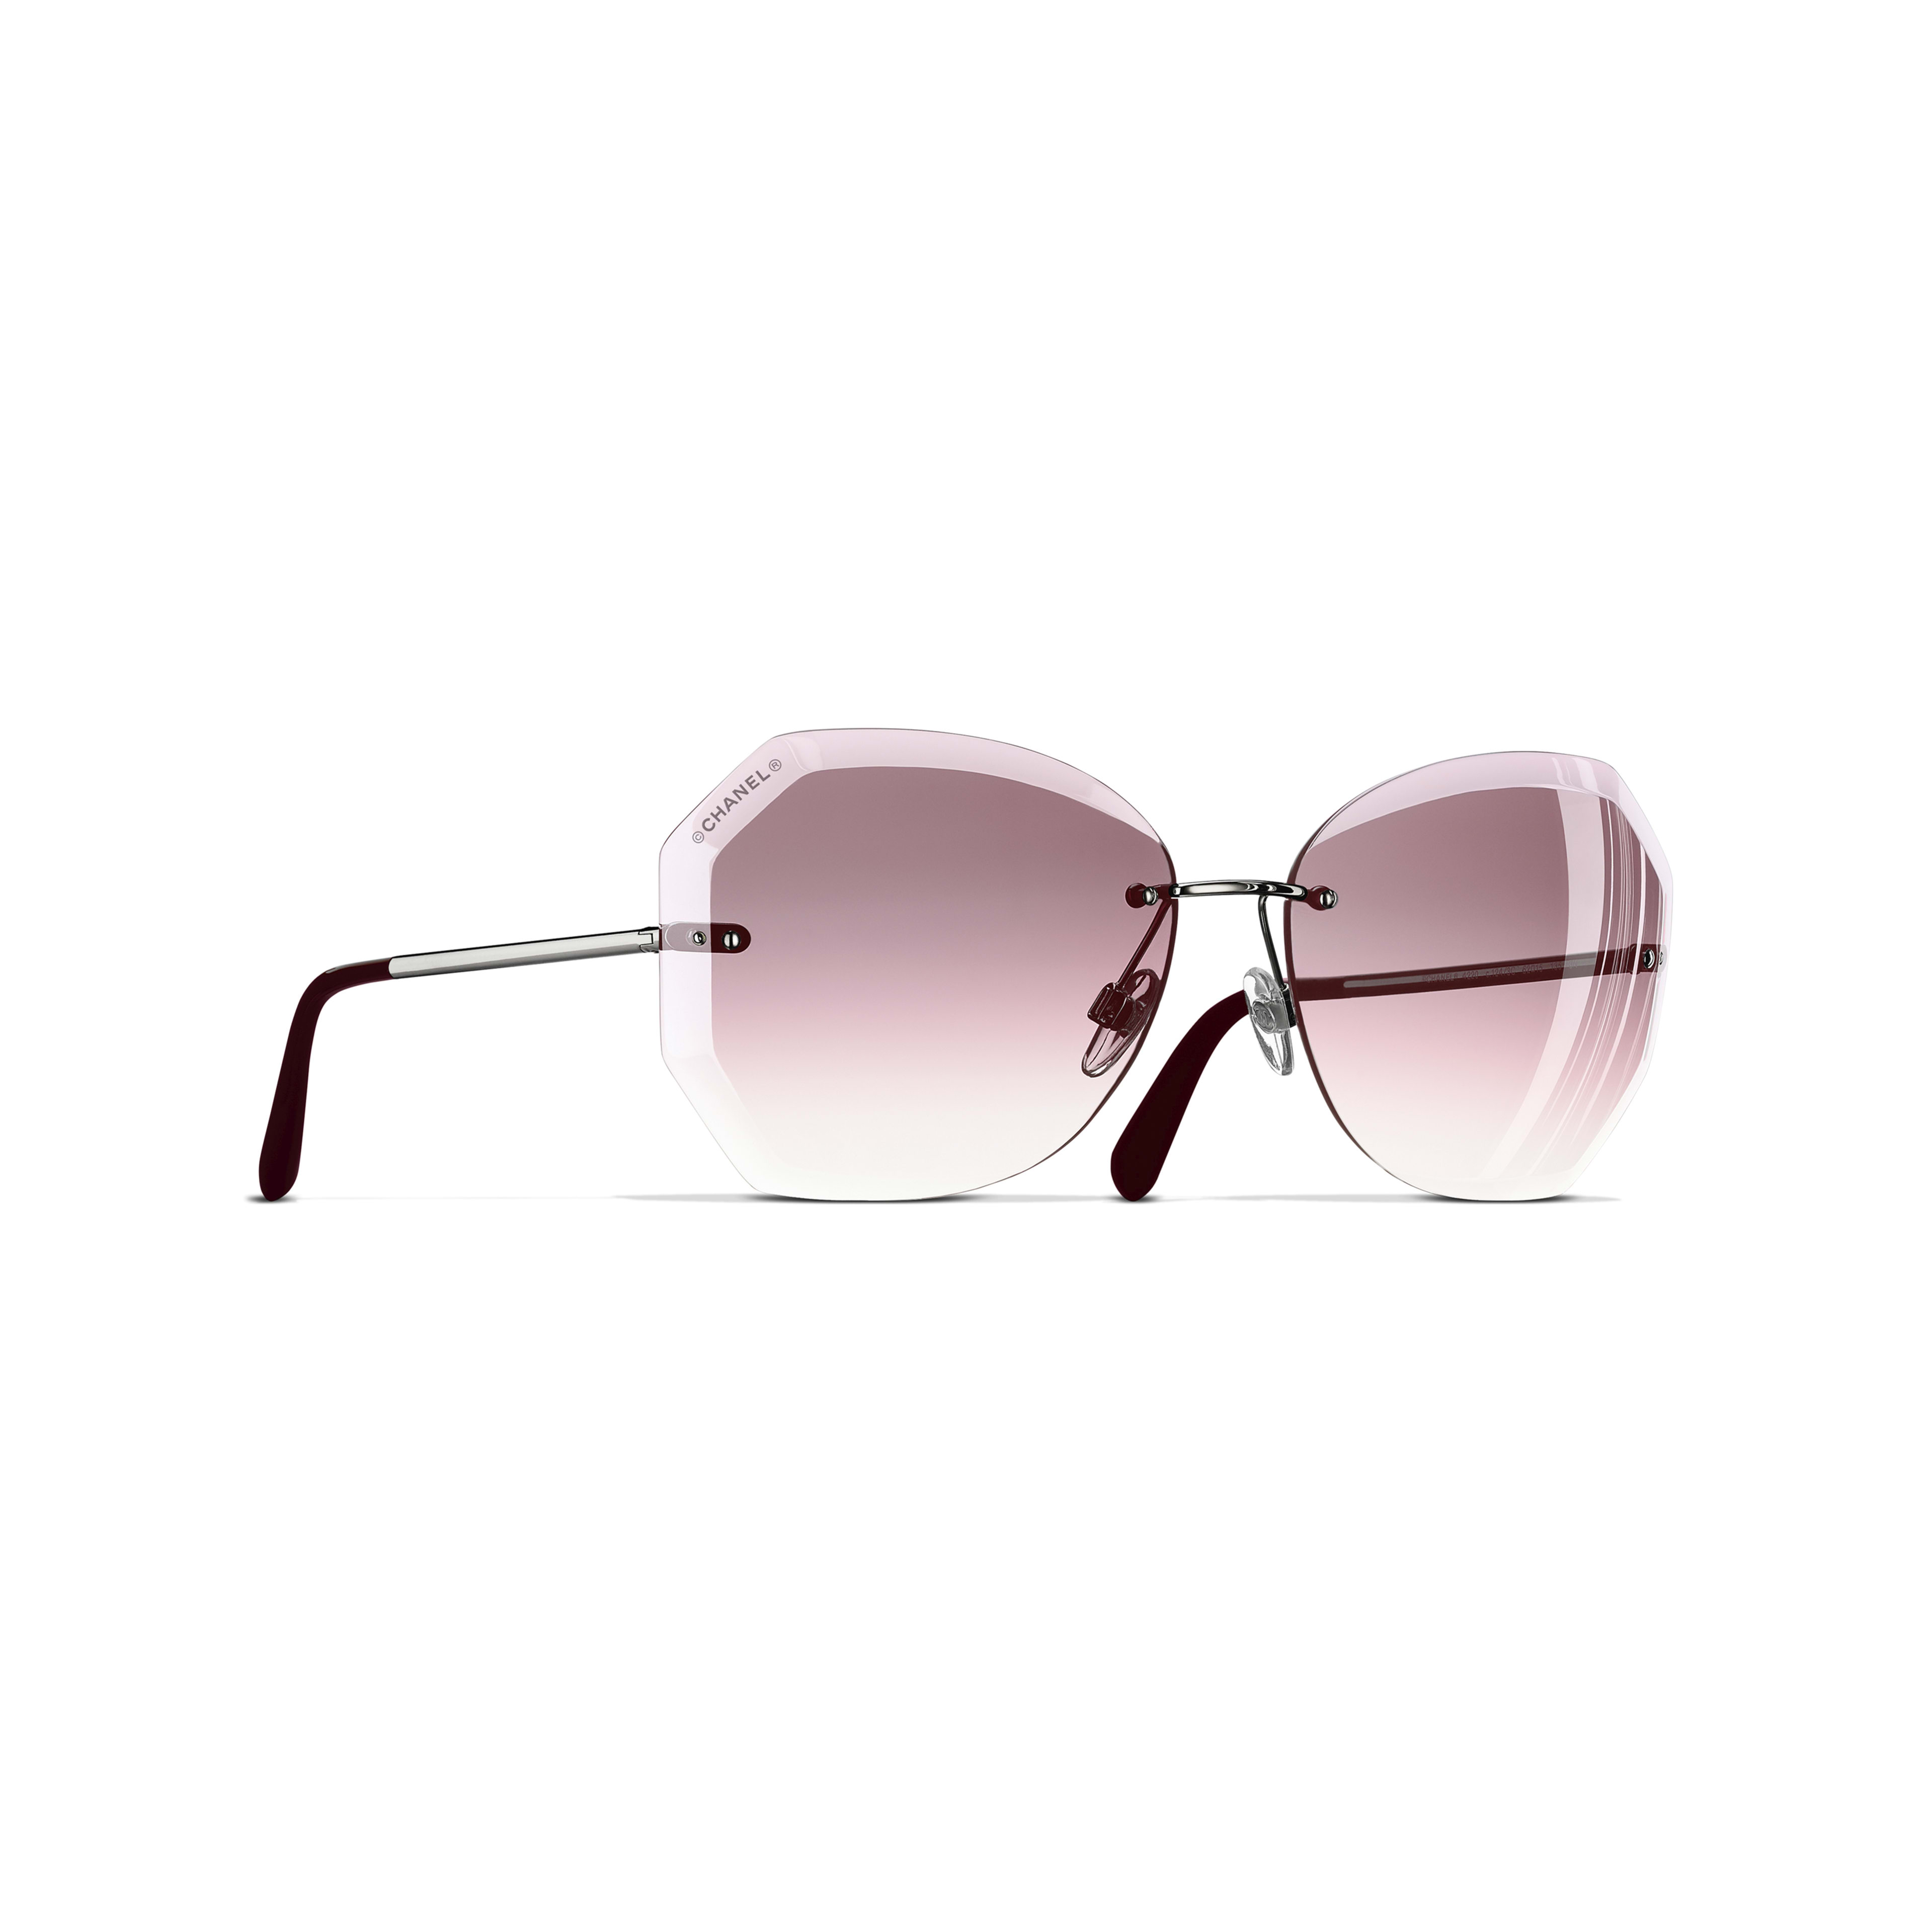 Round Sunglasses - Silver & Pink - Metal - Default view - see standard sized version